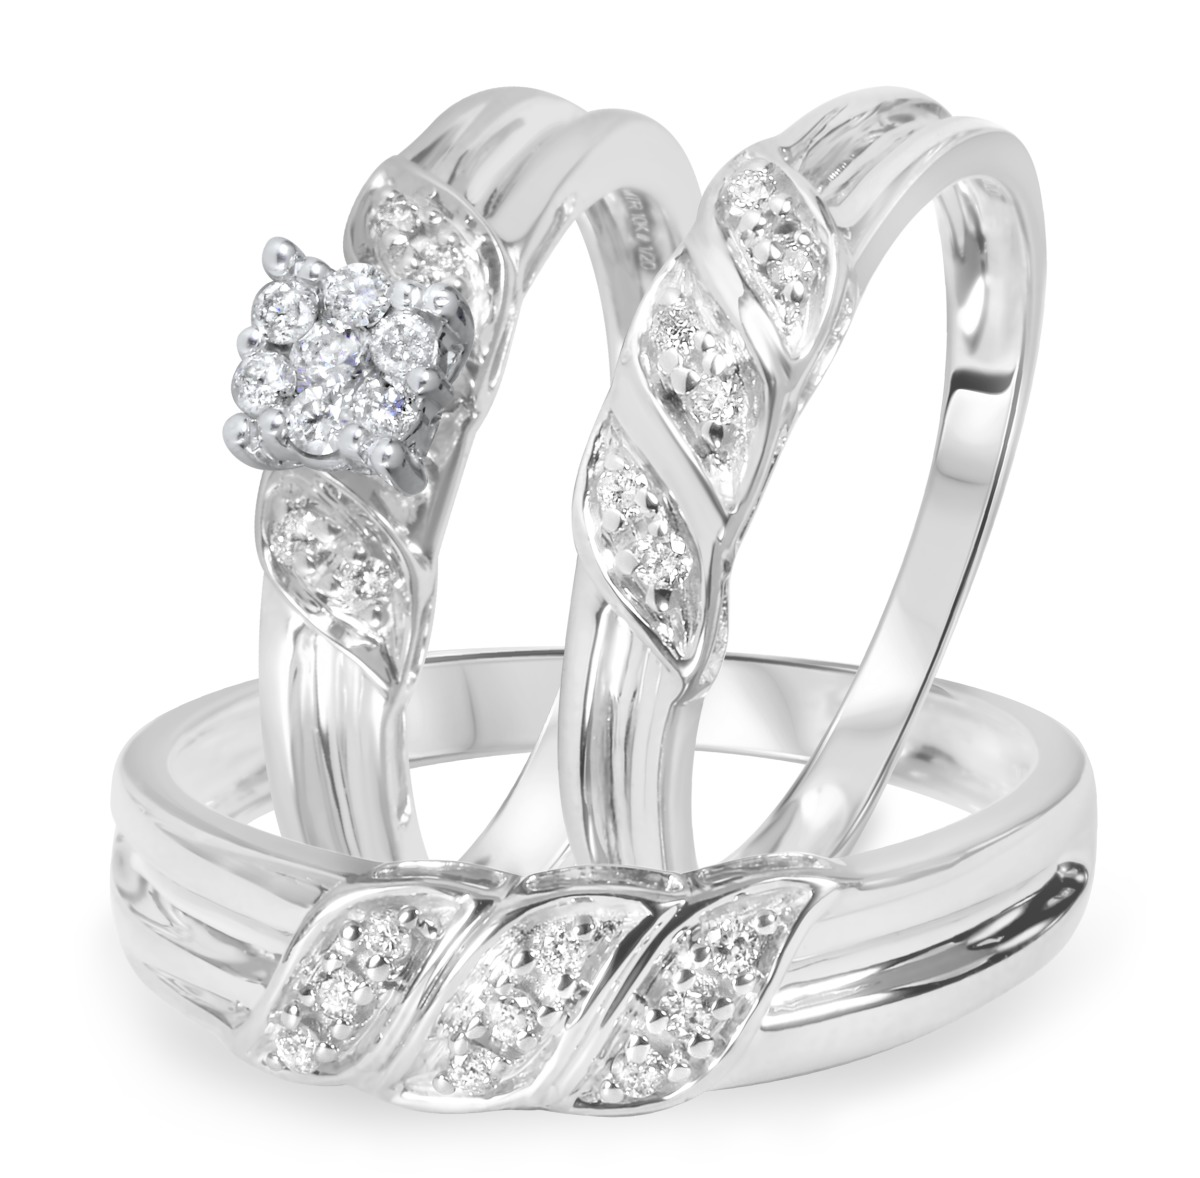 1/4 Carat Diamond Trio Wedding Ring Set 14K White Gold